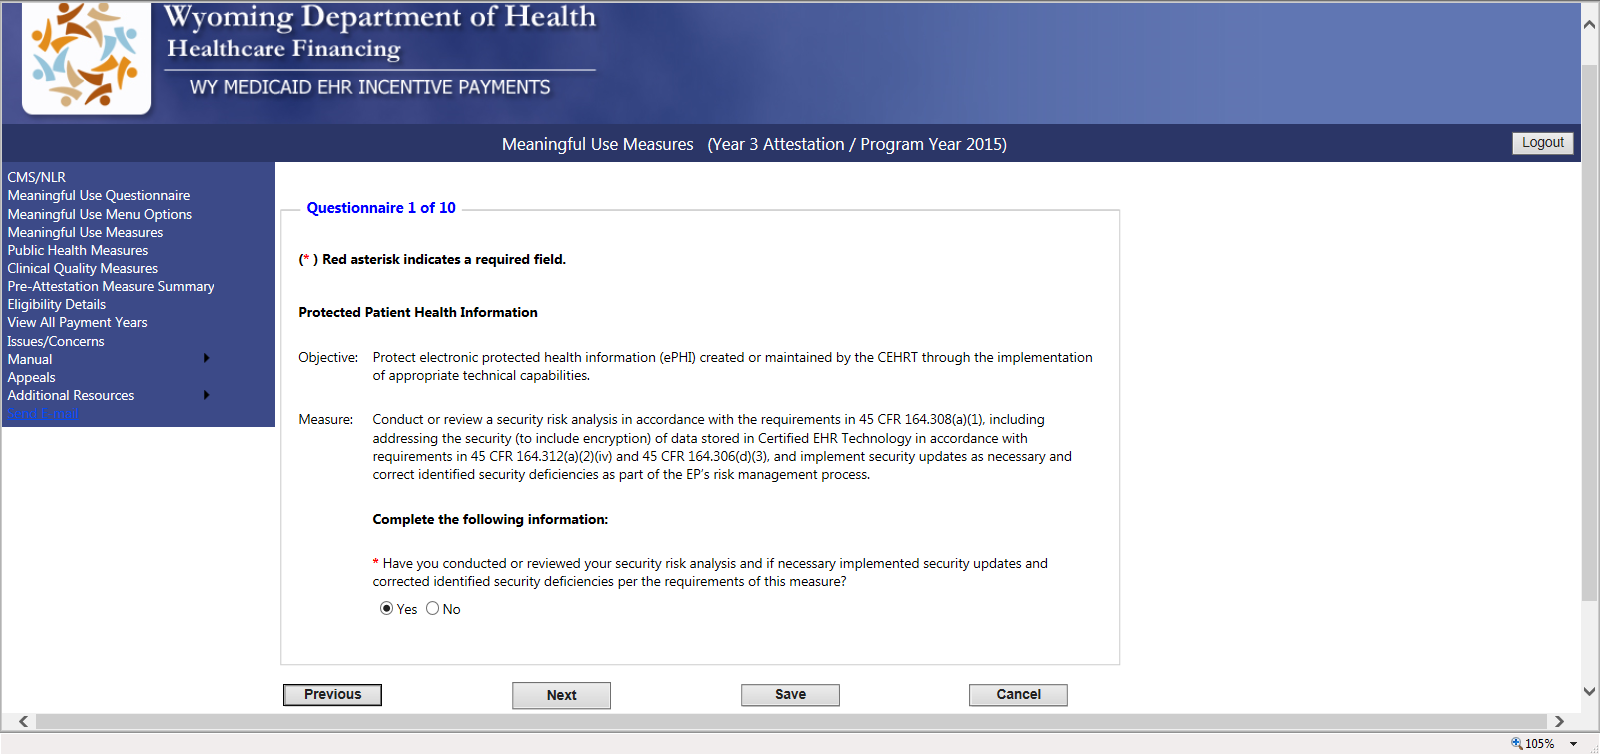 9.1.1 Meaningful Use Measure 1 Screen - Protected Patient Health Information Measure 1 to report on the Protected Patient Health Information measure does not offer any alternates for EPs who would be